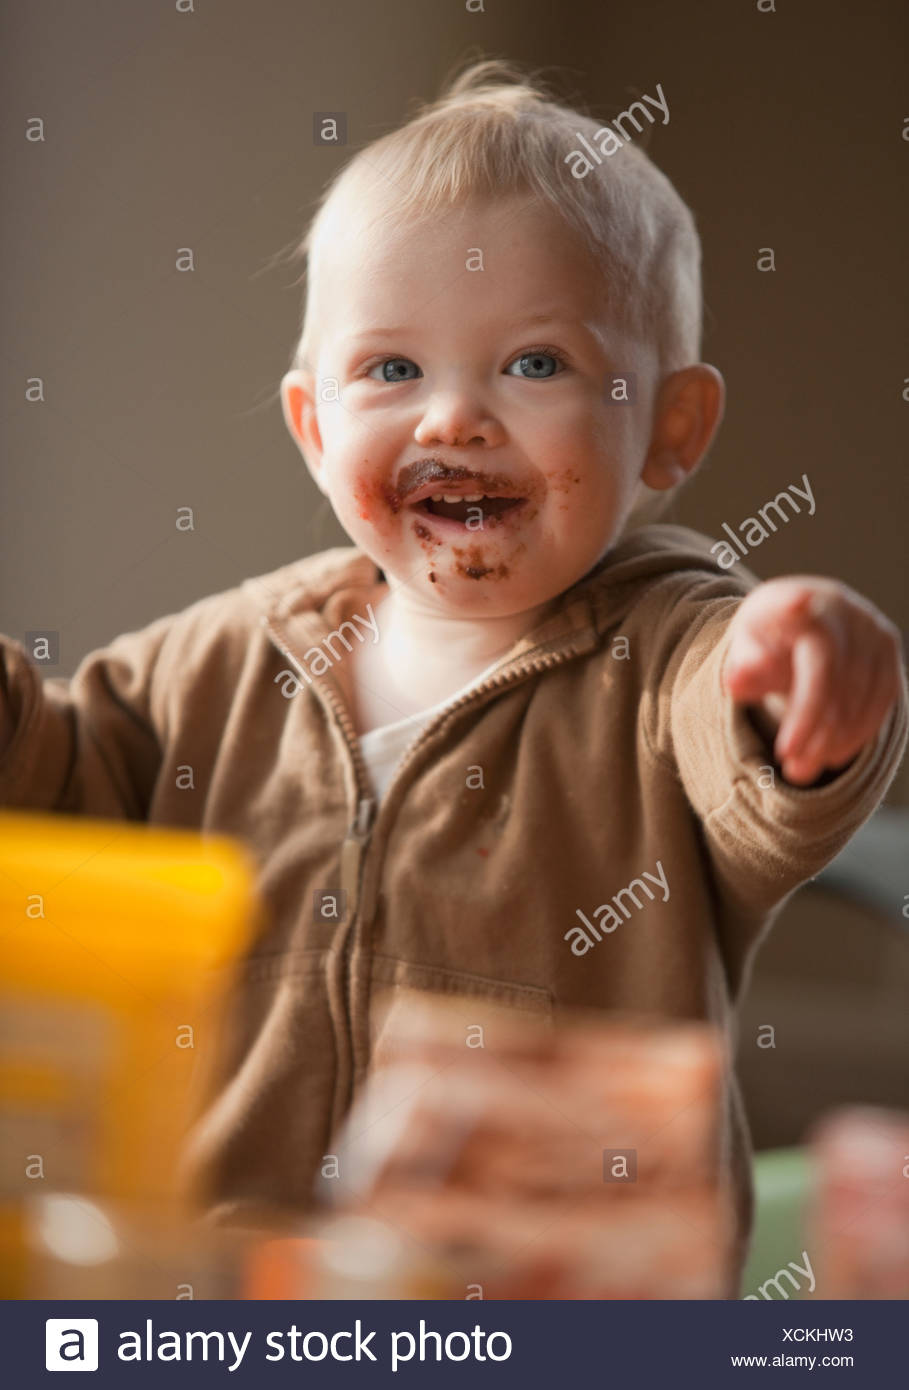 Baby with messy face - Stock Image